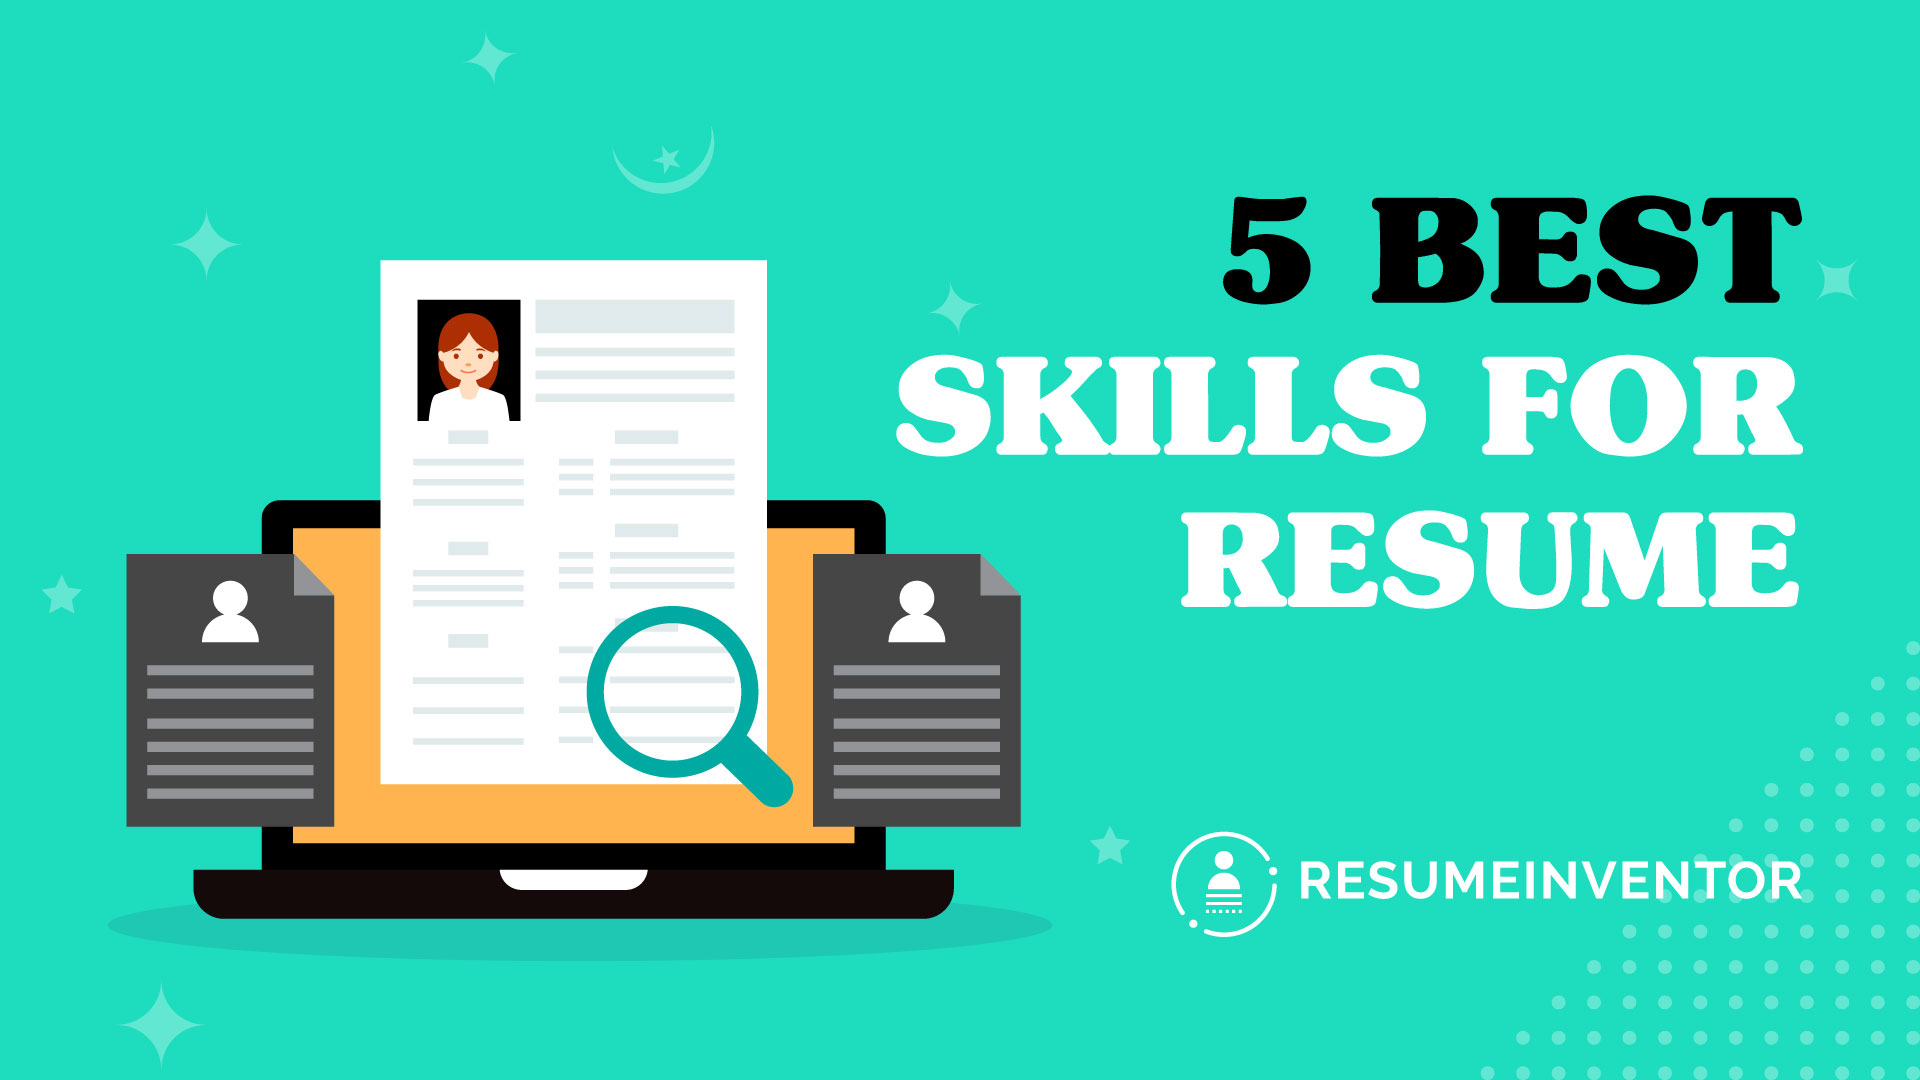 marketing resume skills 2021